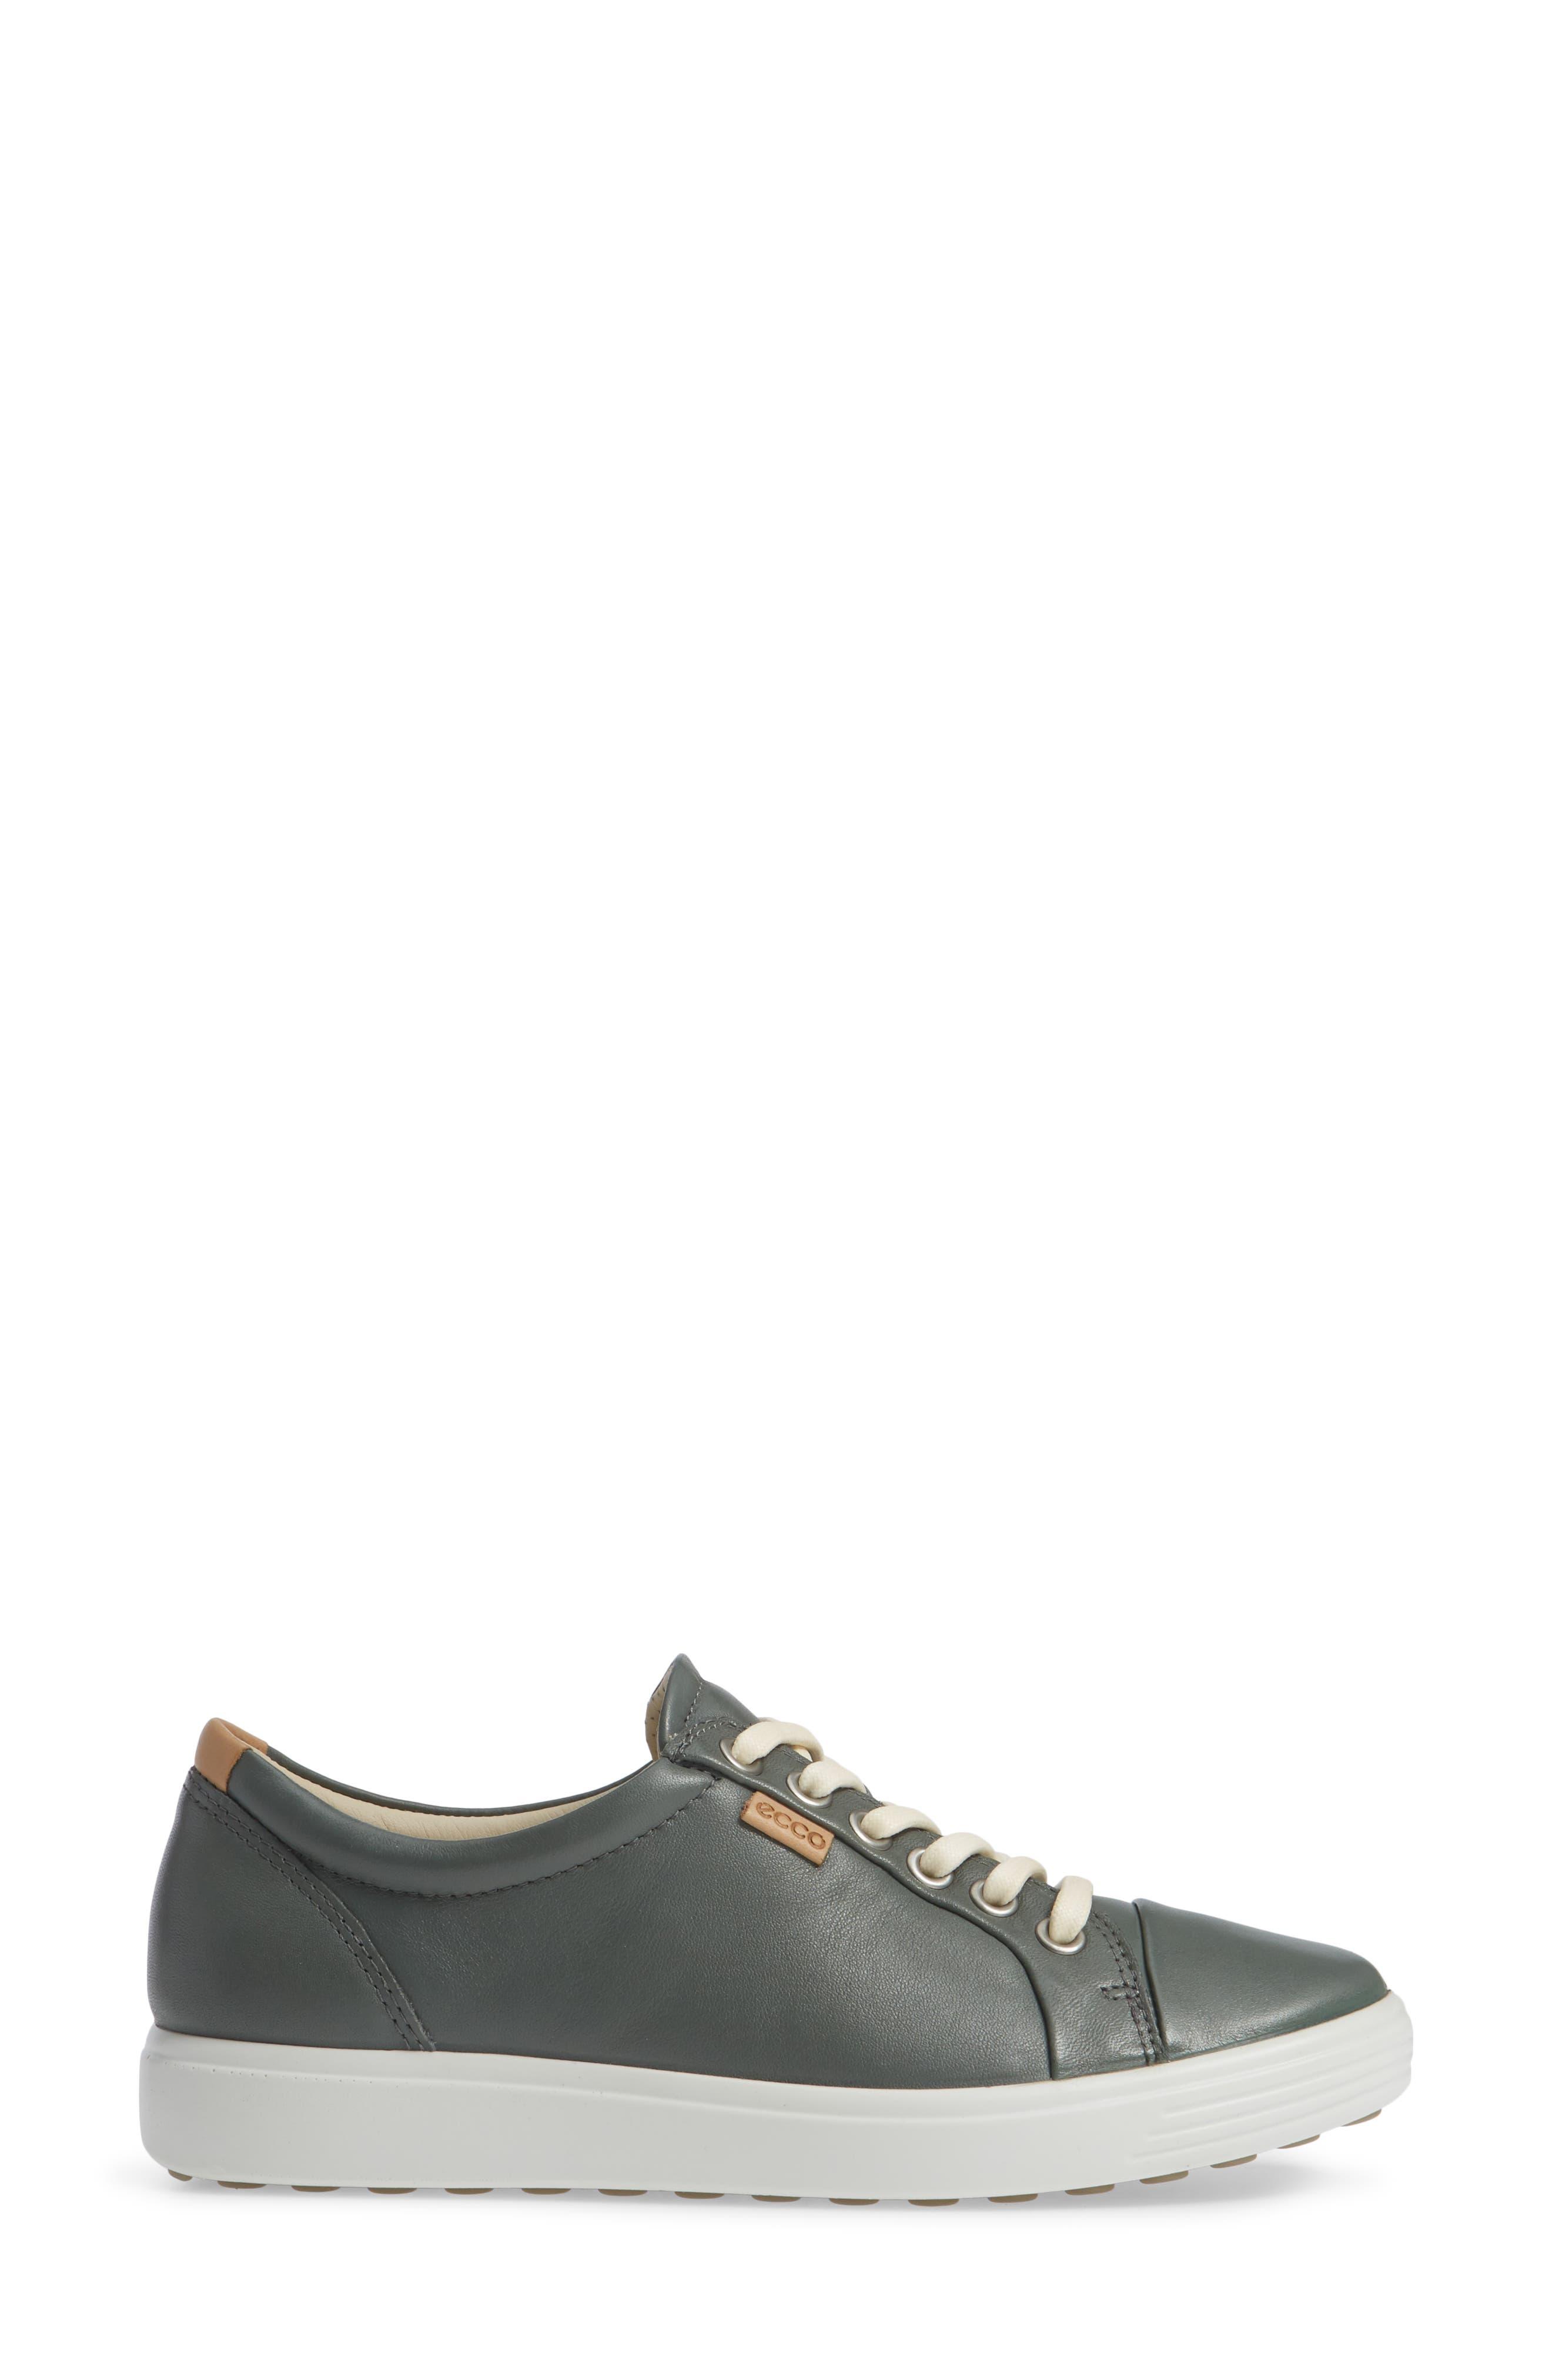 Soft 7 Sneaker,                             Alternate thumbnail 3, color,                             MOON LEATHER